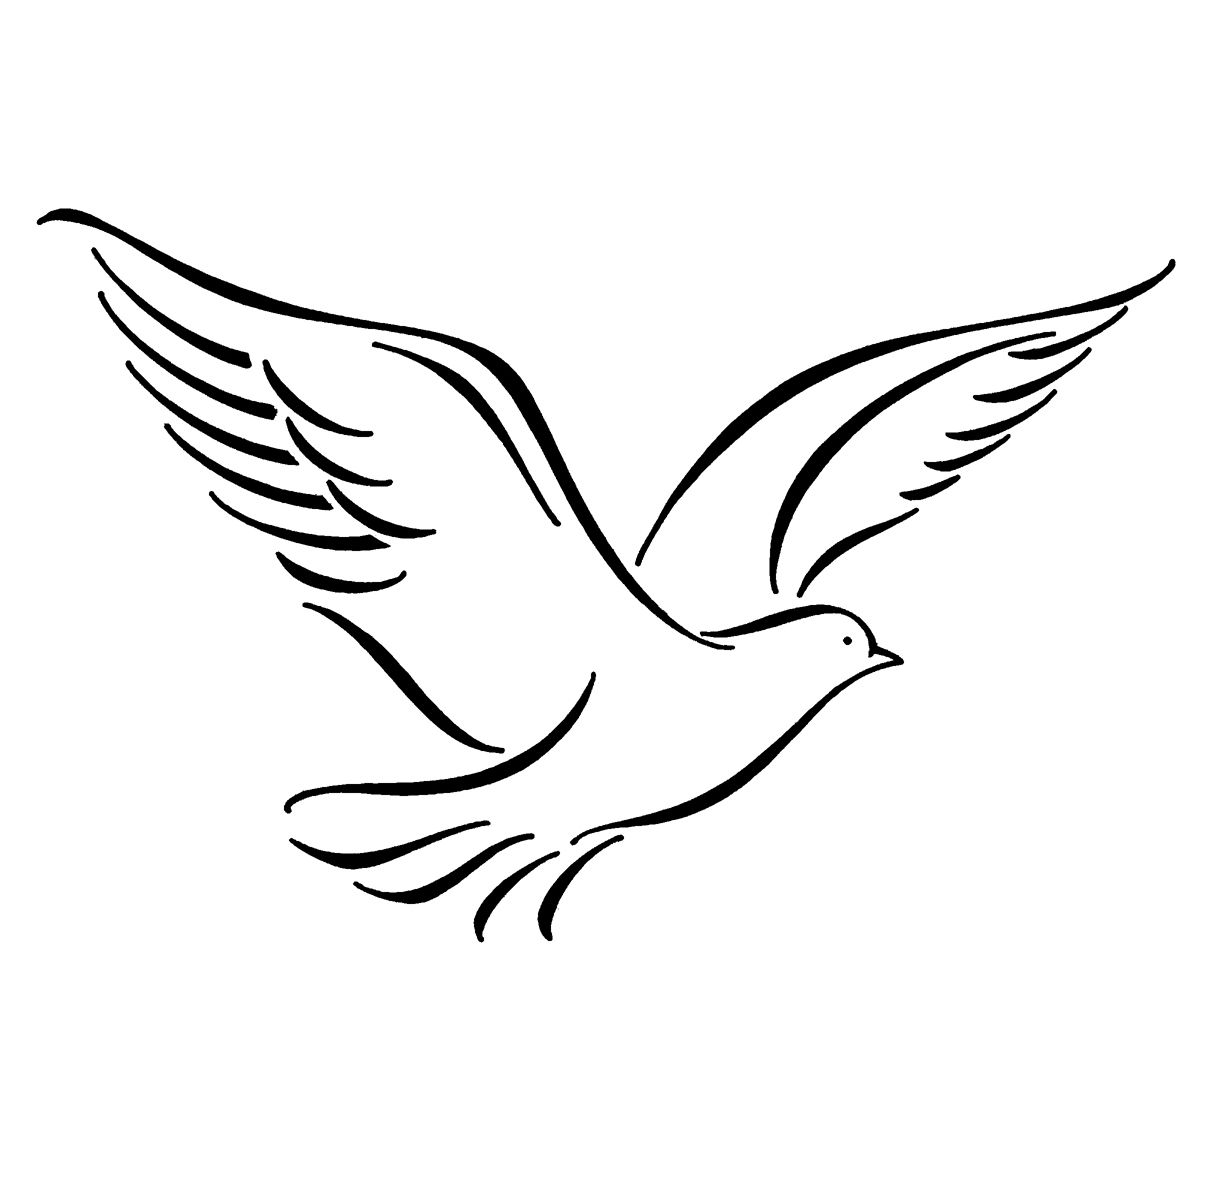 Drawing Of Birds Flying.